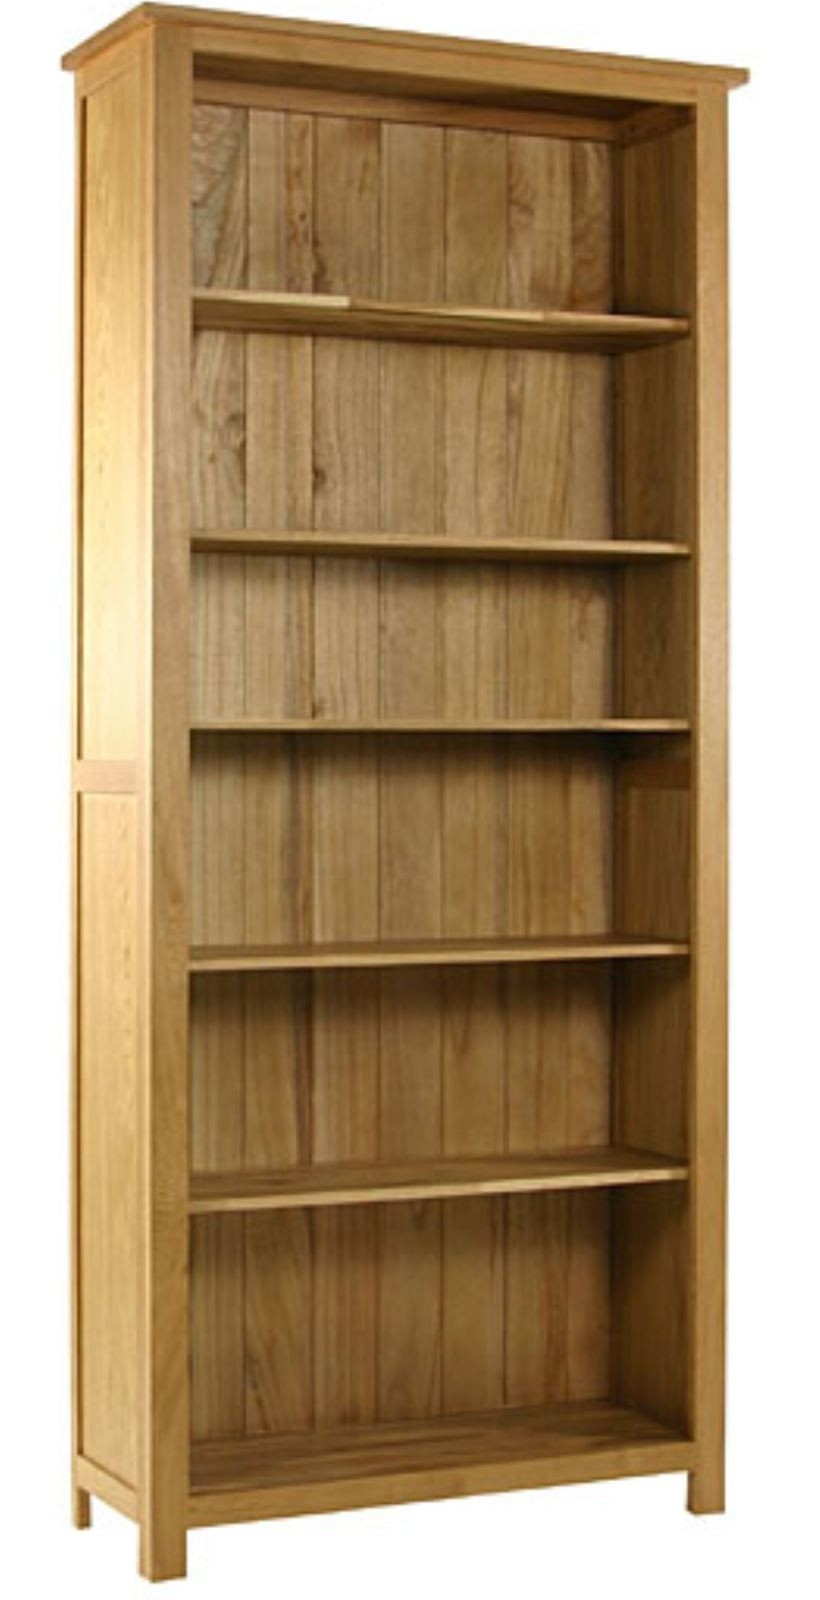 Happy Home Furnishers Bookcases Within Tall Bookcases (View 2 of 15)